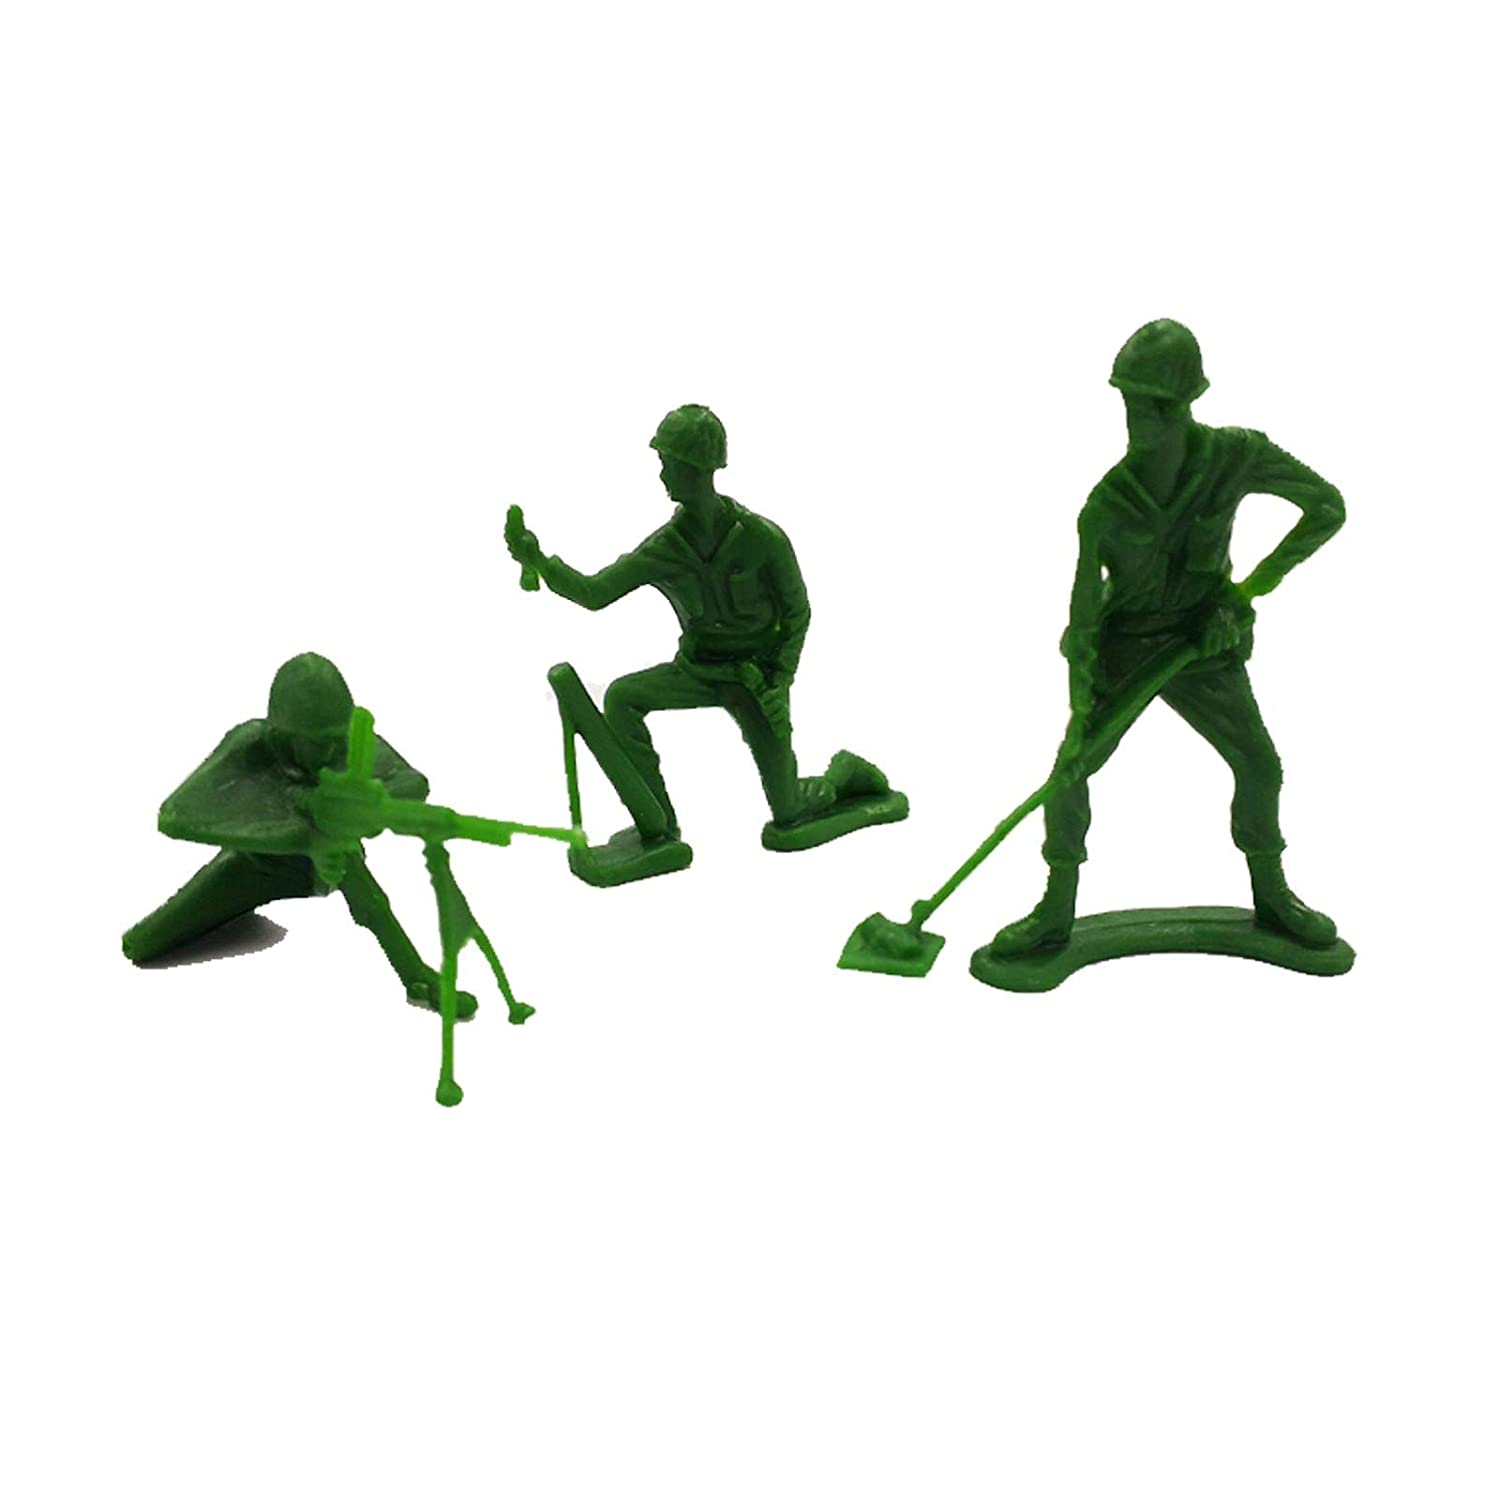 Wowow Toys Jumbo Army Toy Soldiers Figures 200 Pack For Boys /& Girls